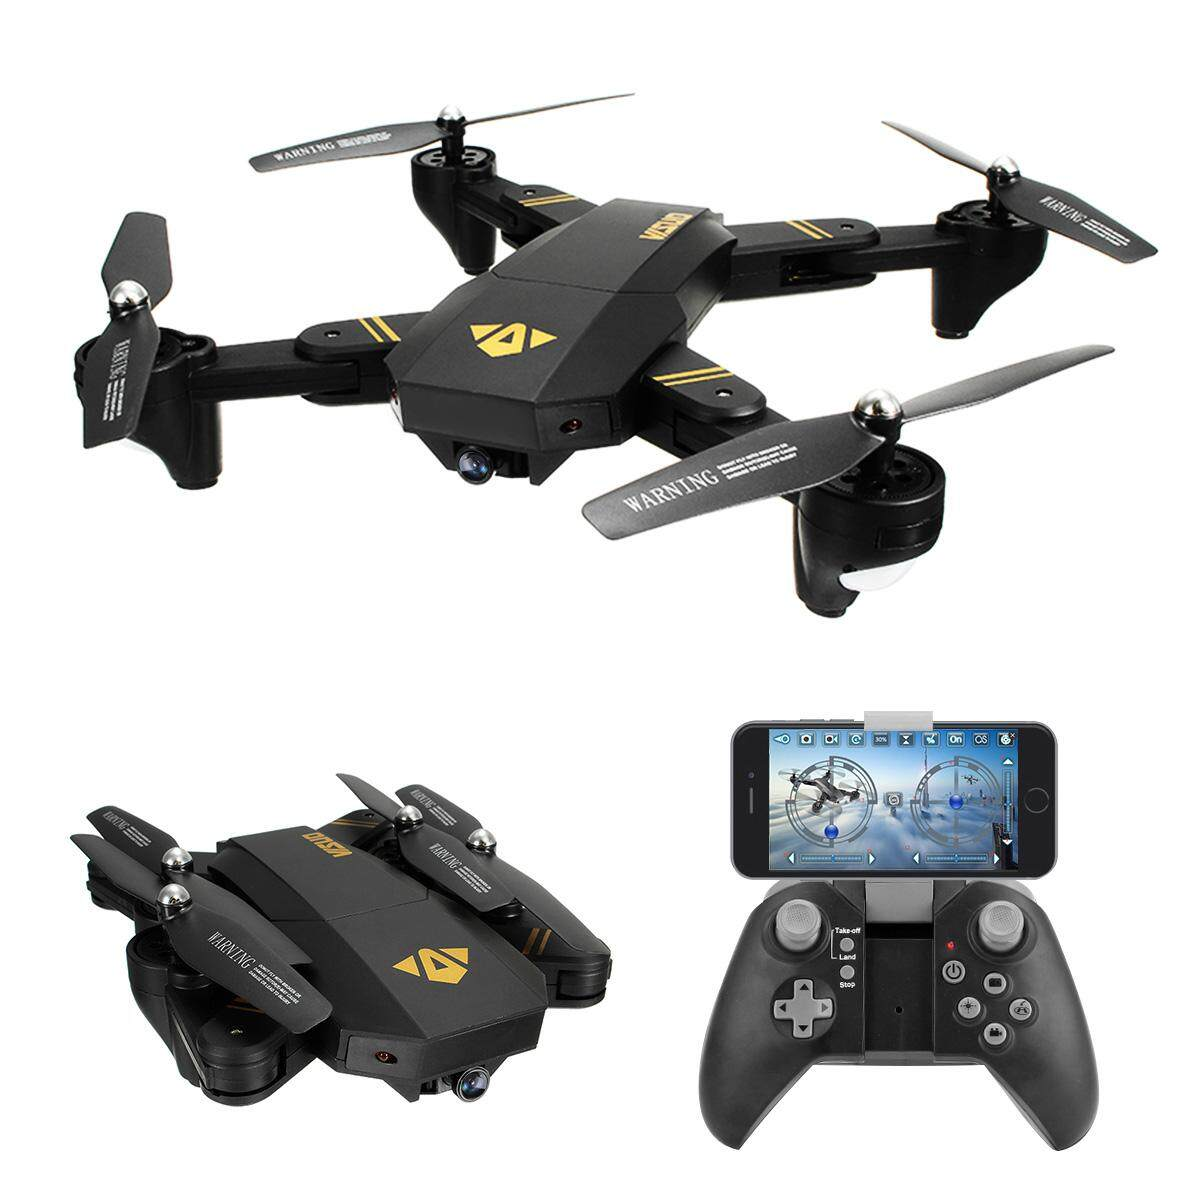 Remote Control Toys For The Best Prices In Malaysia Wiring Lampu Rumah Visuo Xs809hw Wifi Fpv With Wide Angle Hd Camera High Hold Mode Foldable Arm Rc Drone